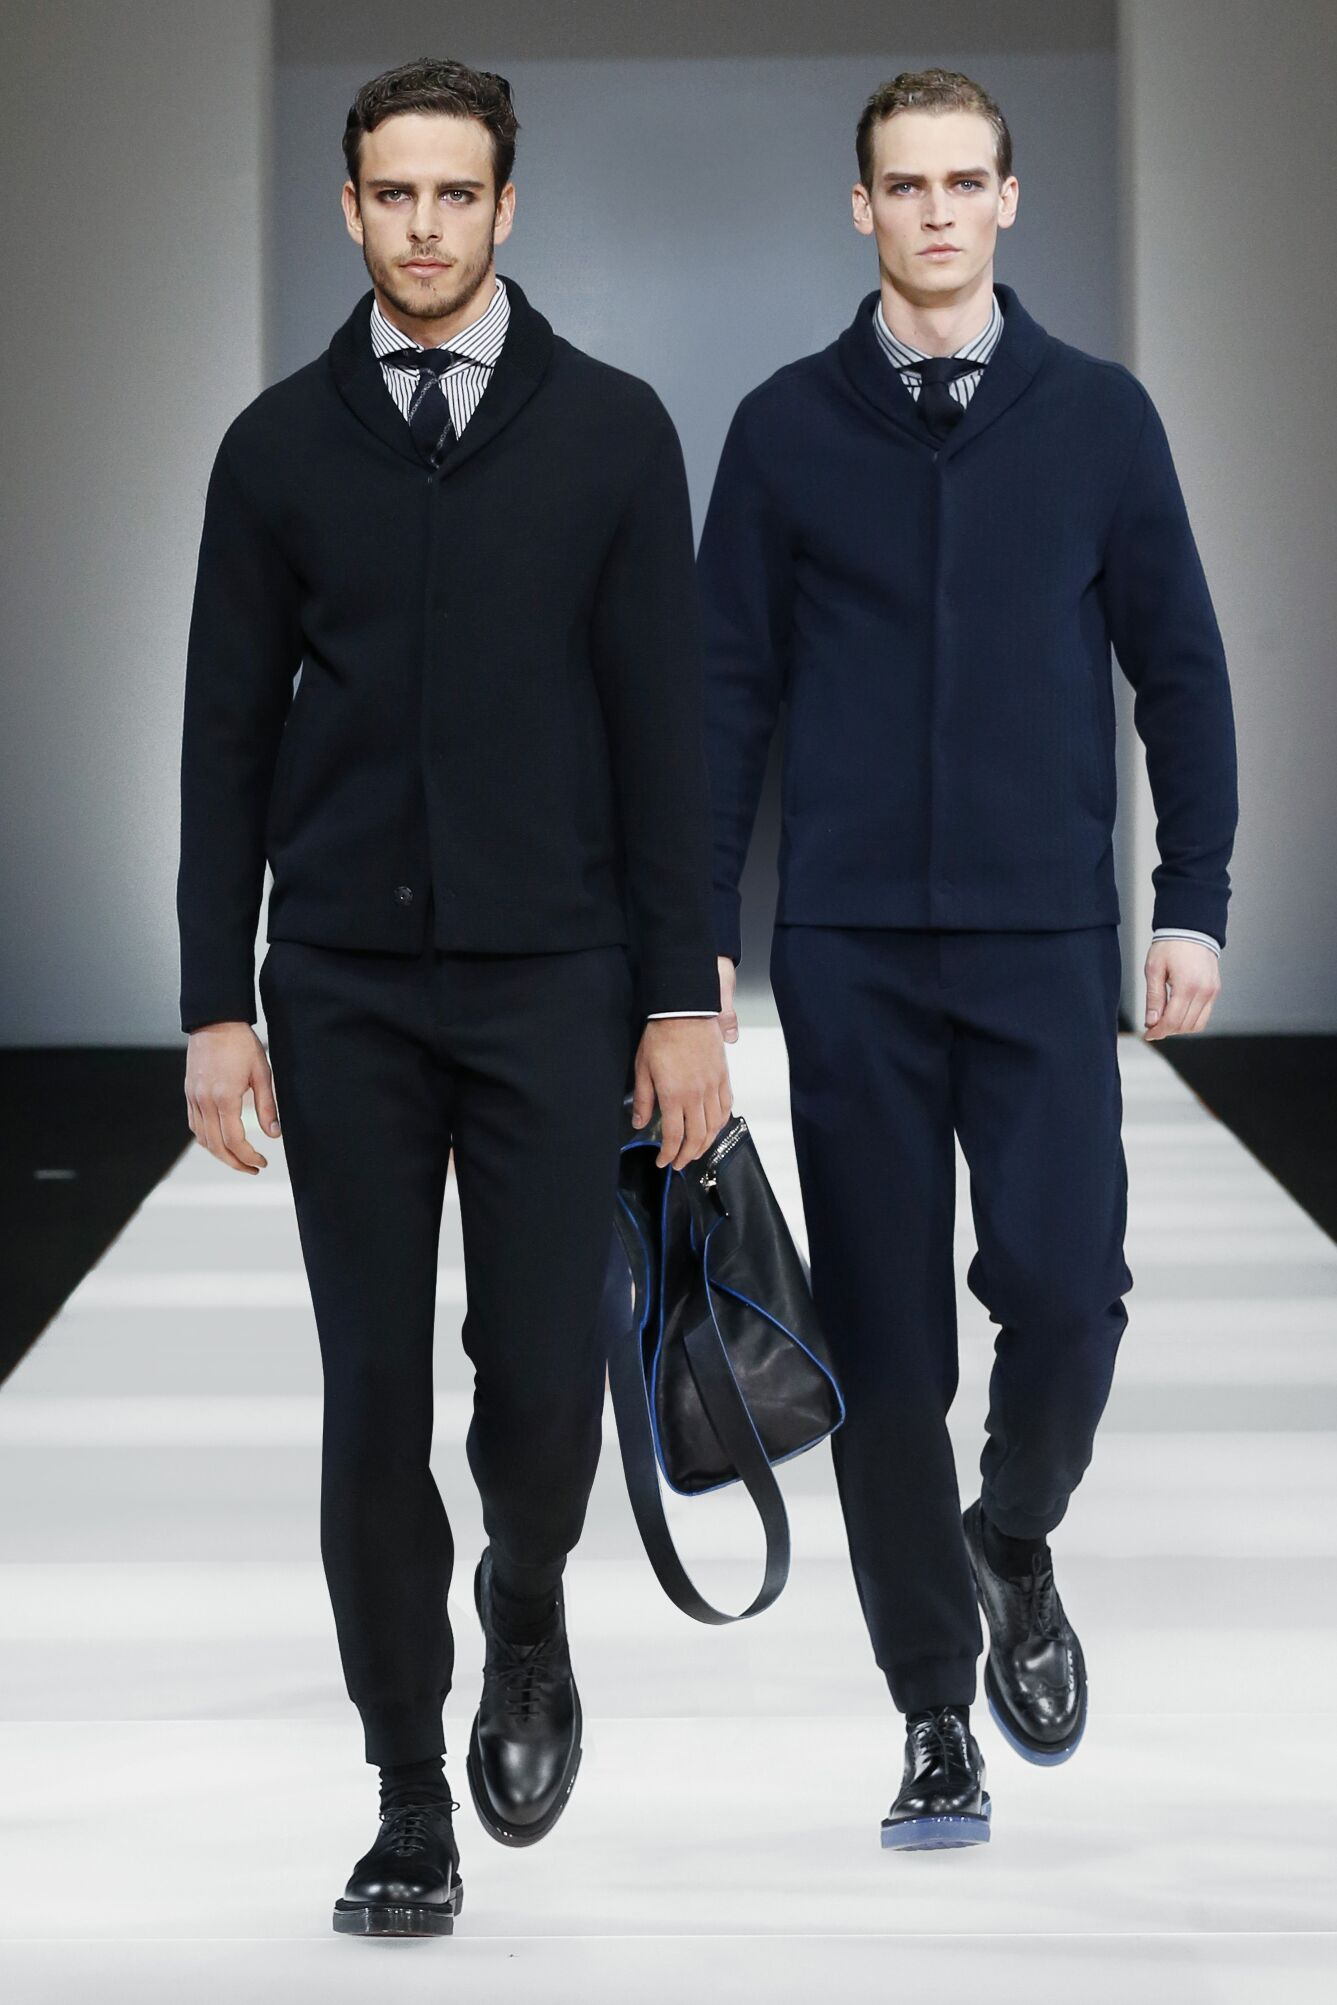 2015 16 Catwalk Emporio Armani Fall Winter Men's Collection Milano Fashion Week